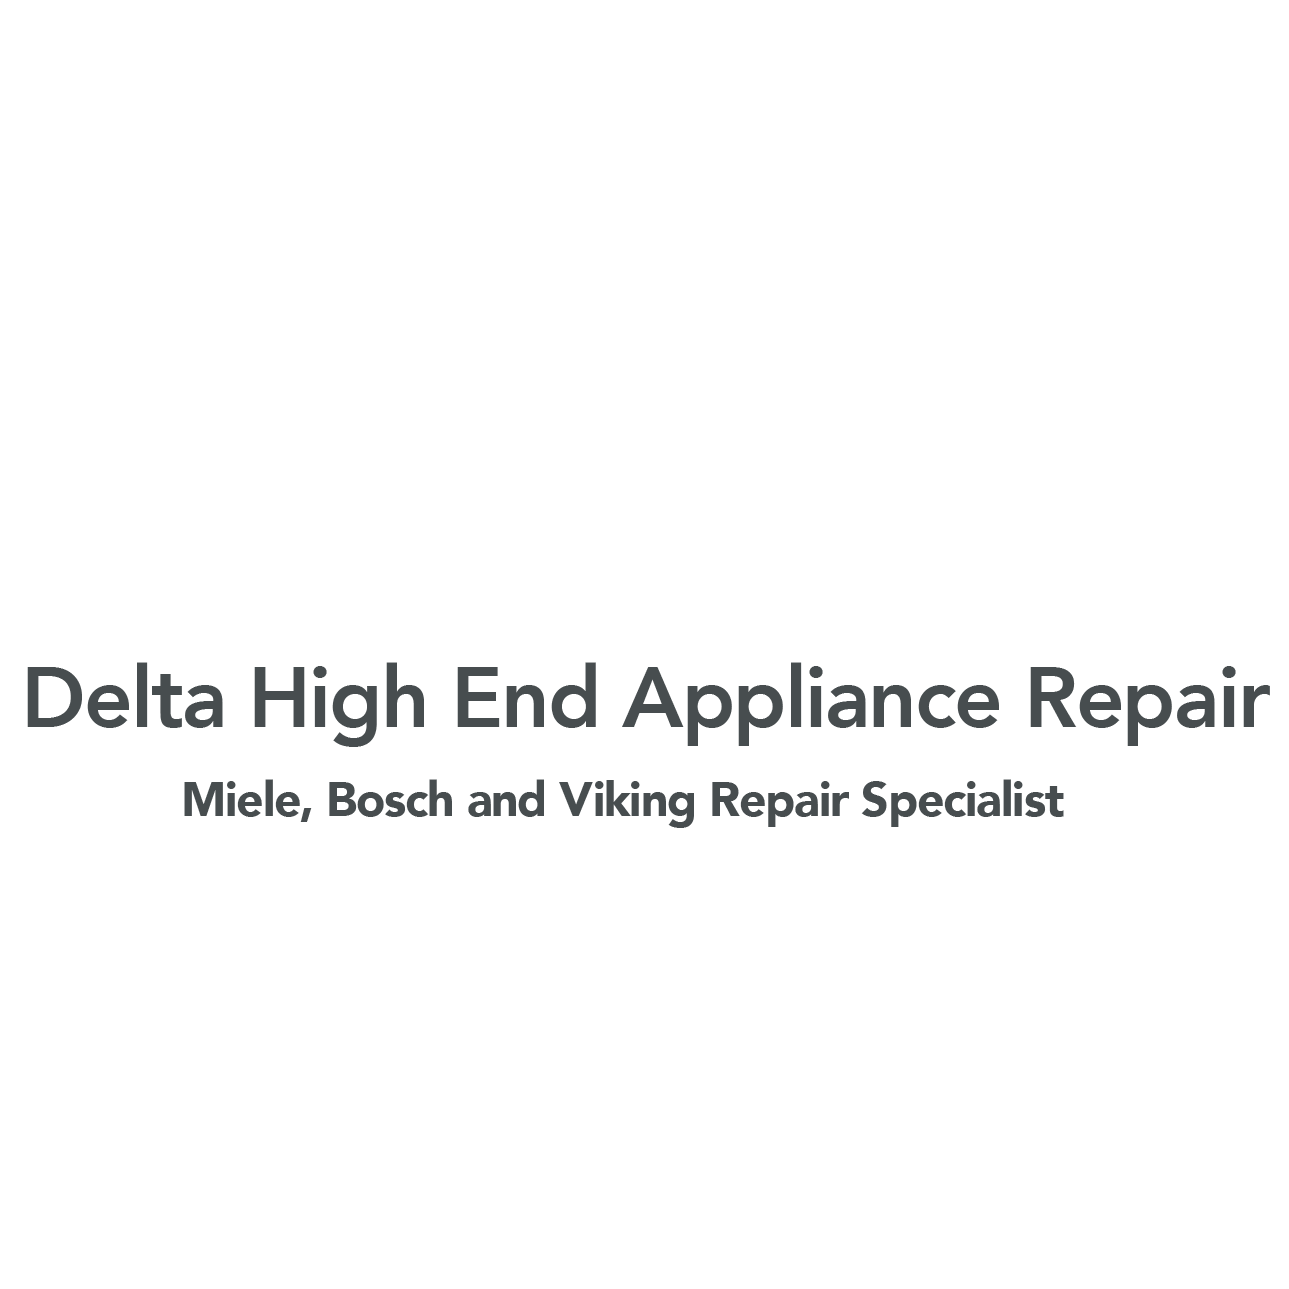 Delta High End Appliance Repair